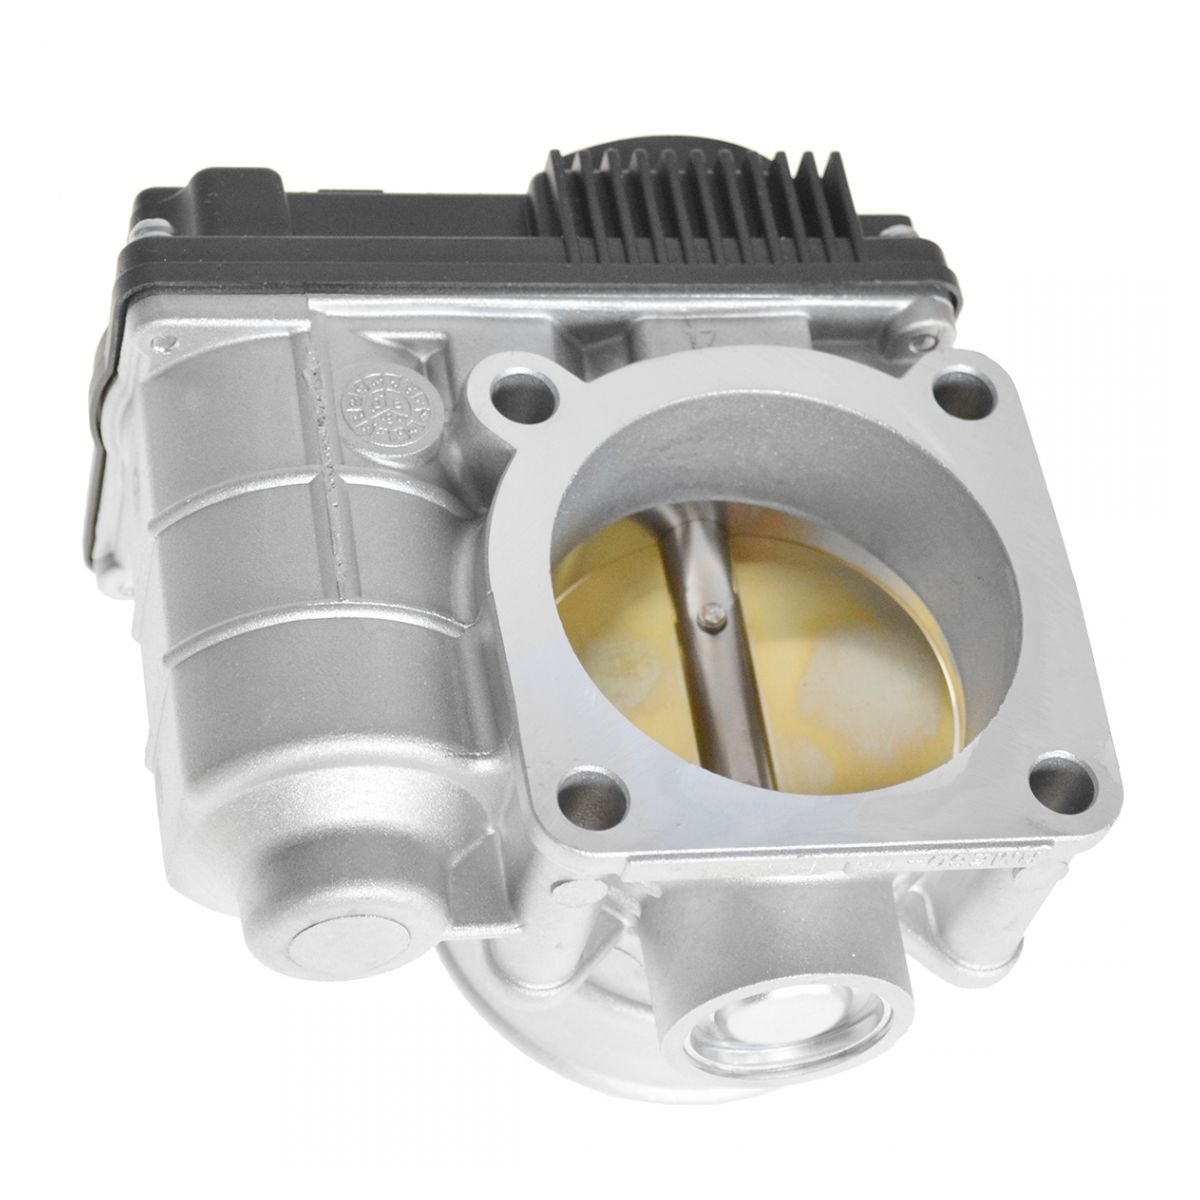 Electronic Throttle Body Assembly for 02-06 Nissan Altima Sentra X-Trail 2.5L